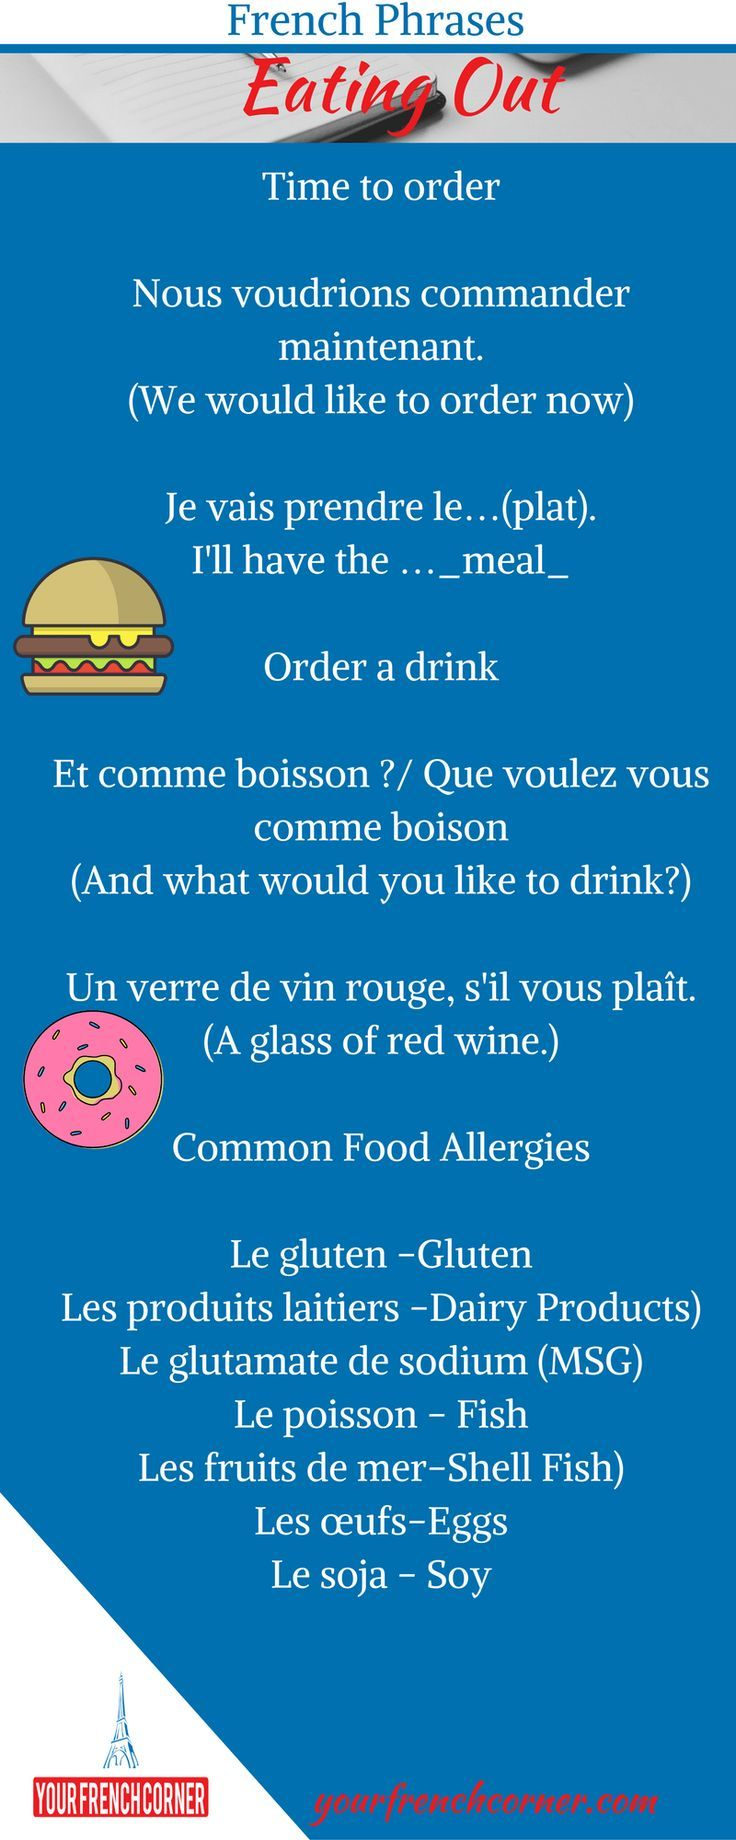 "EO - ""Sortir manger [Eating Out]"", 61 phrases for French Travellers from YourFrenchCorner"